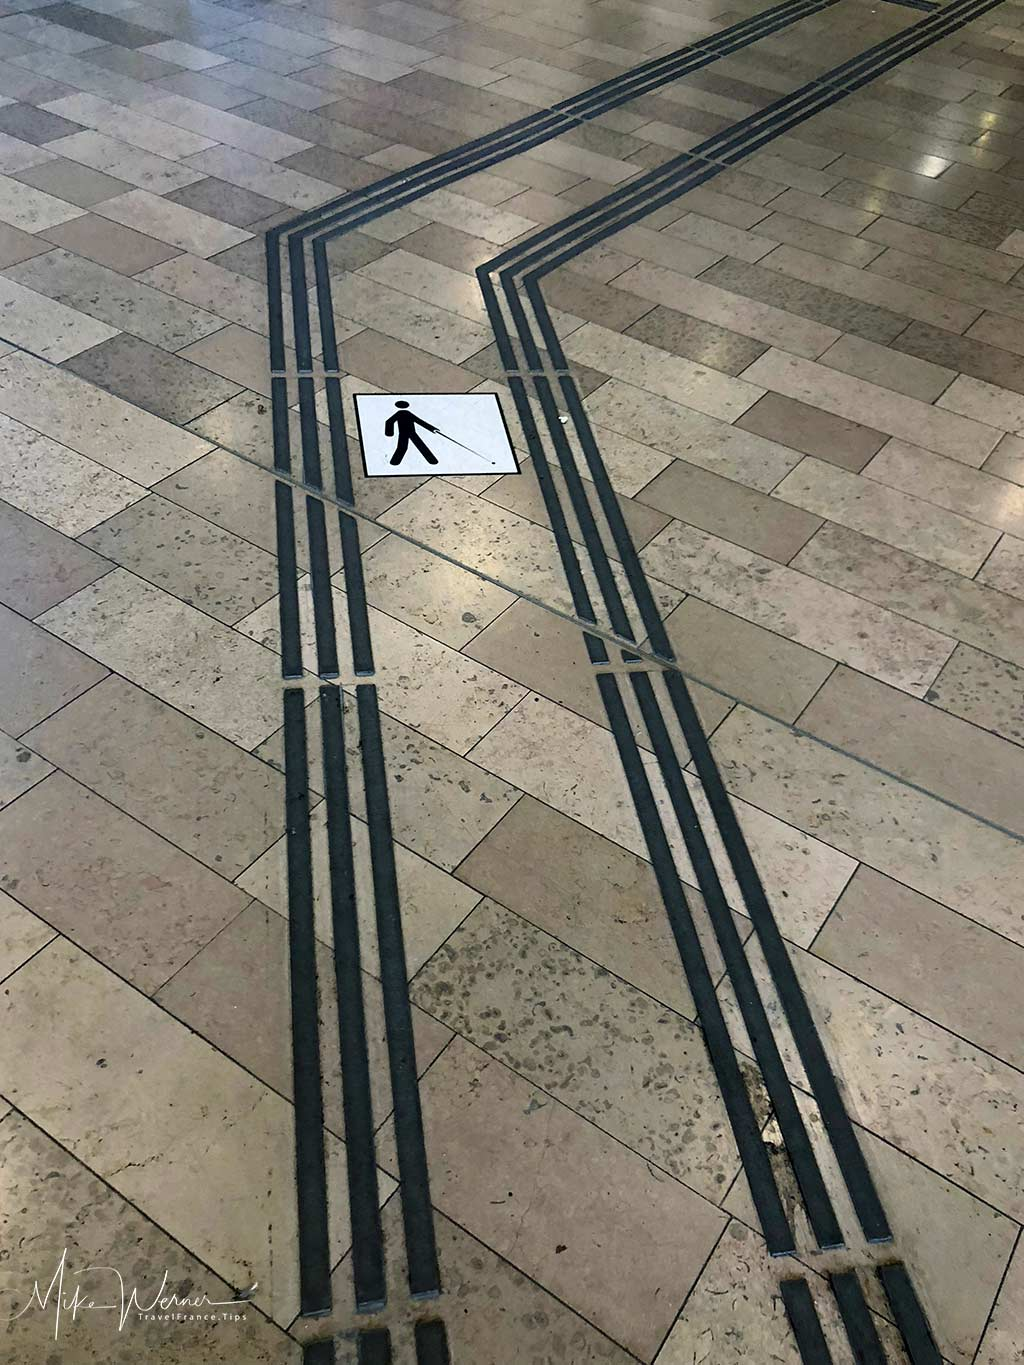 Marking for blind person to help them in and out of the railway station